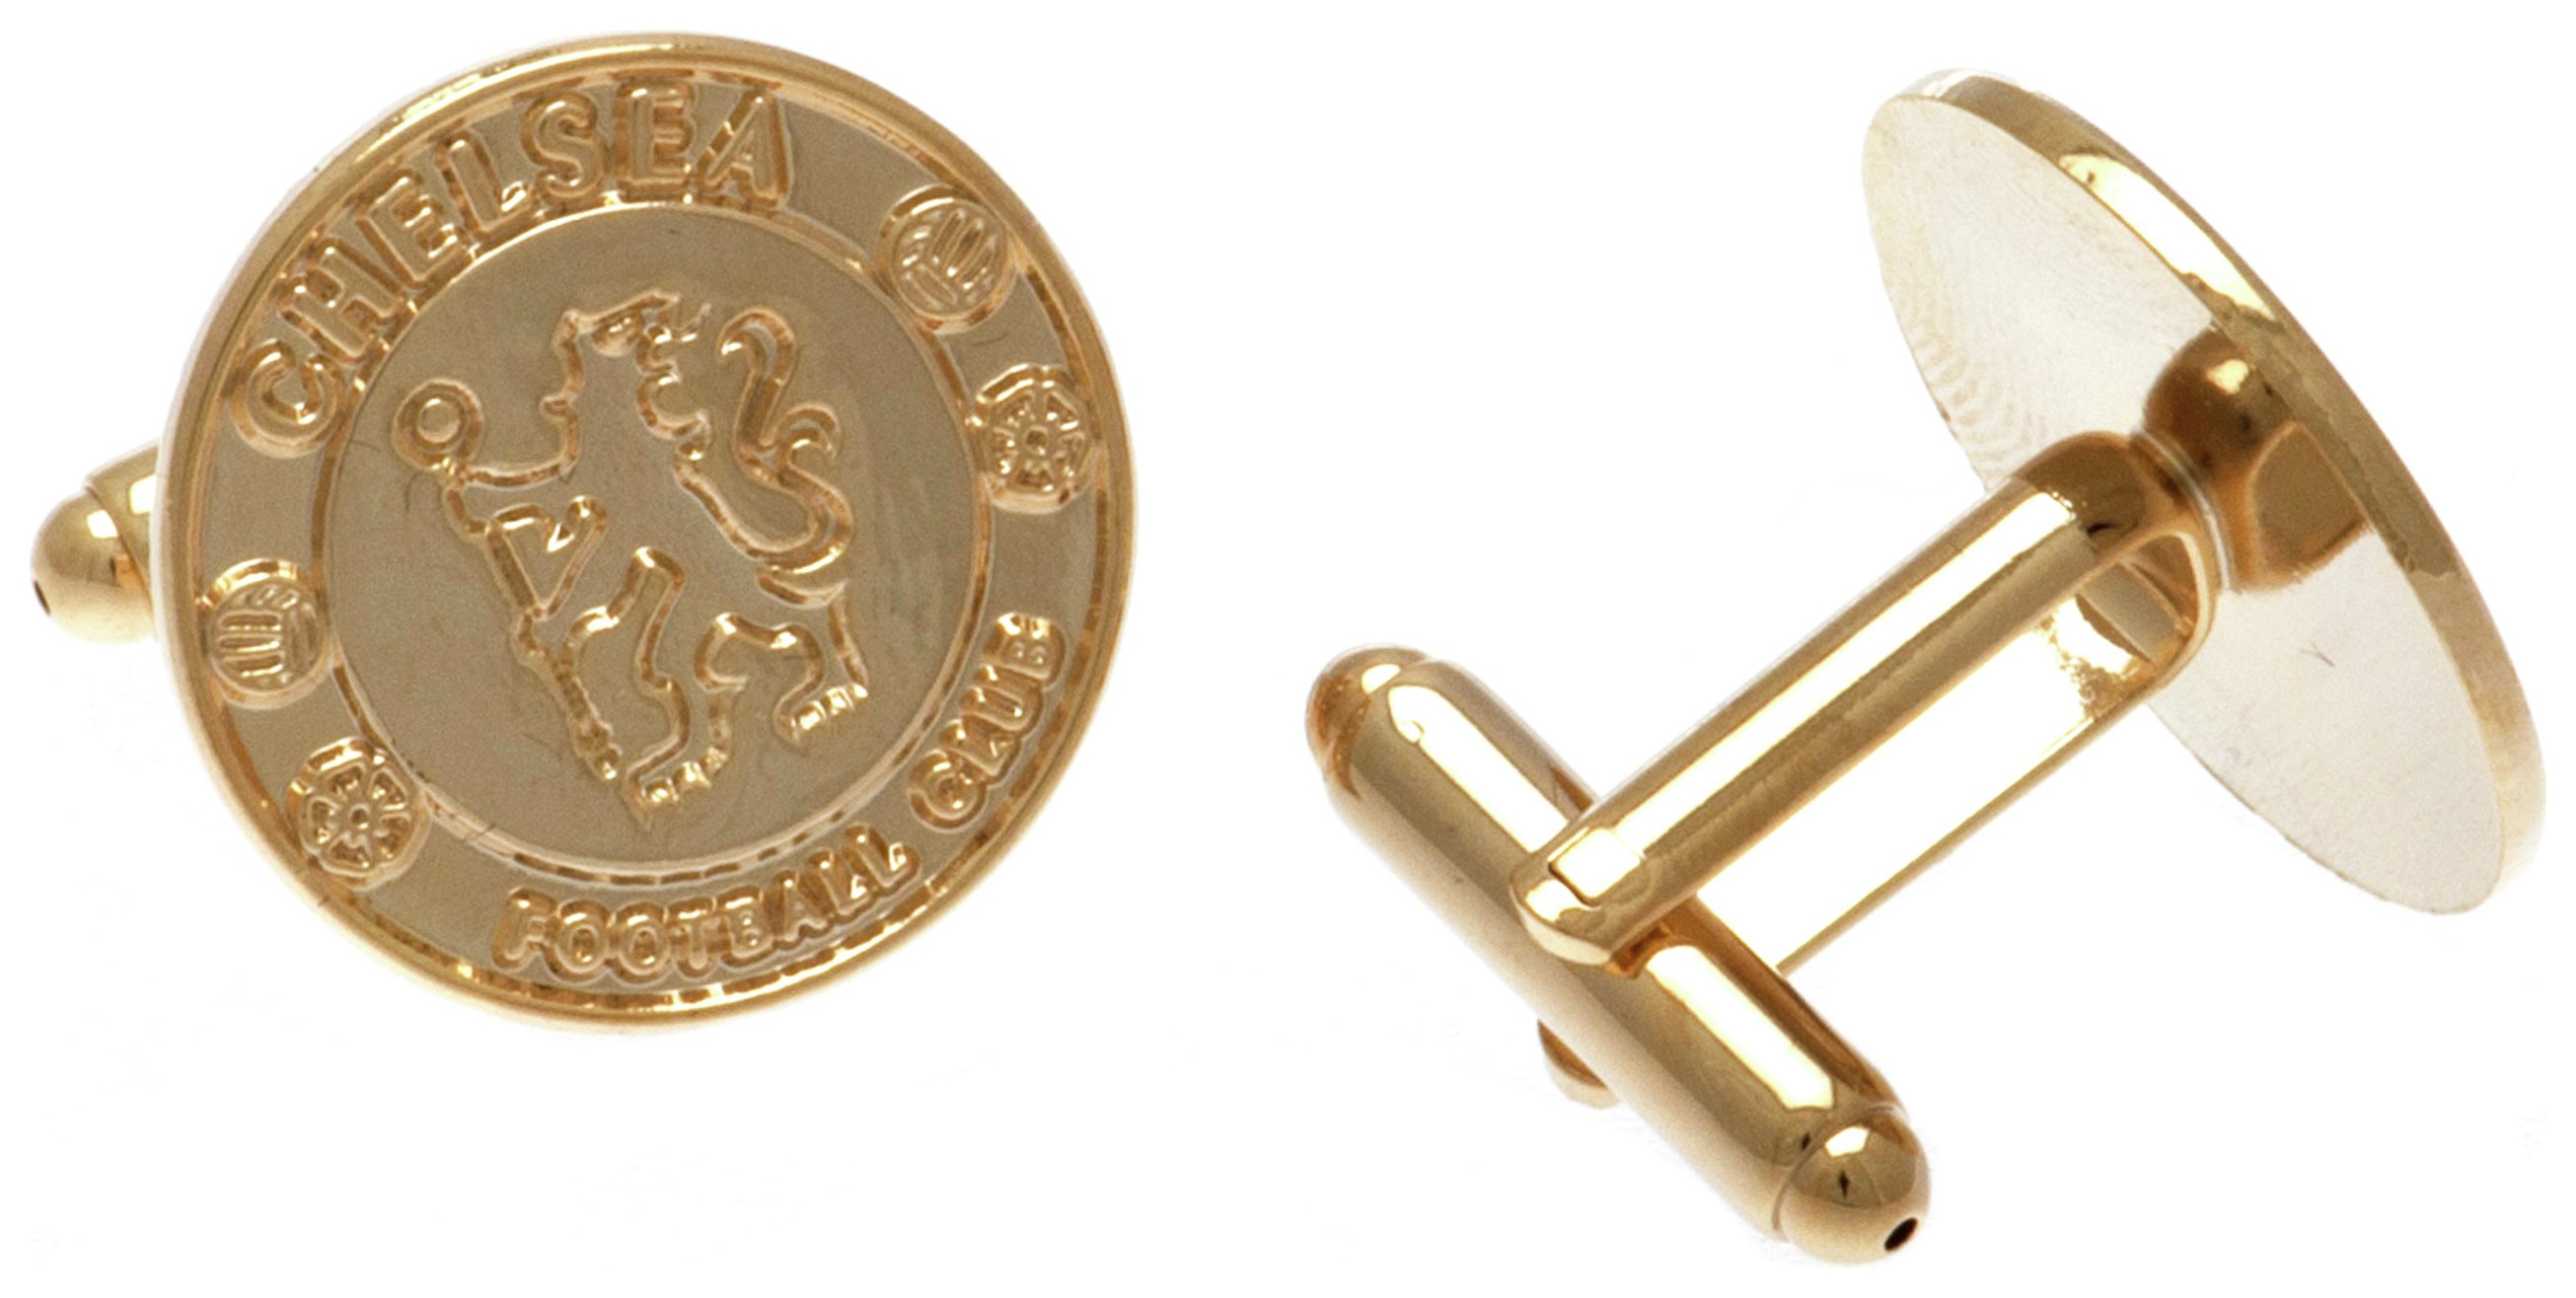 Image of Gold Plated Chelsea Cufflinks.